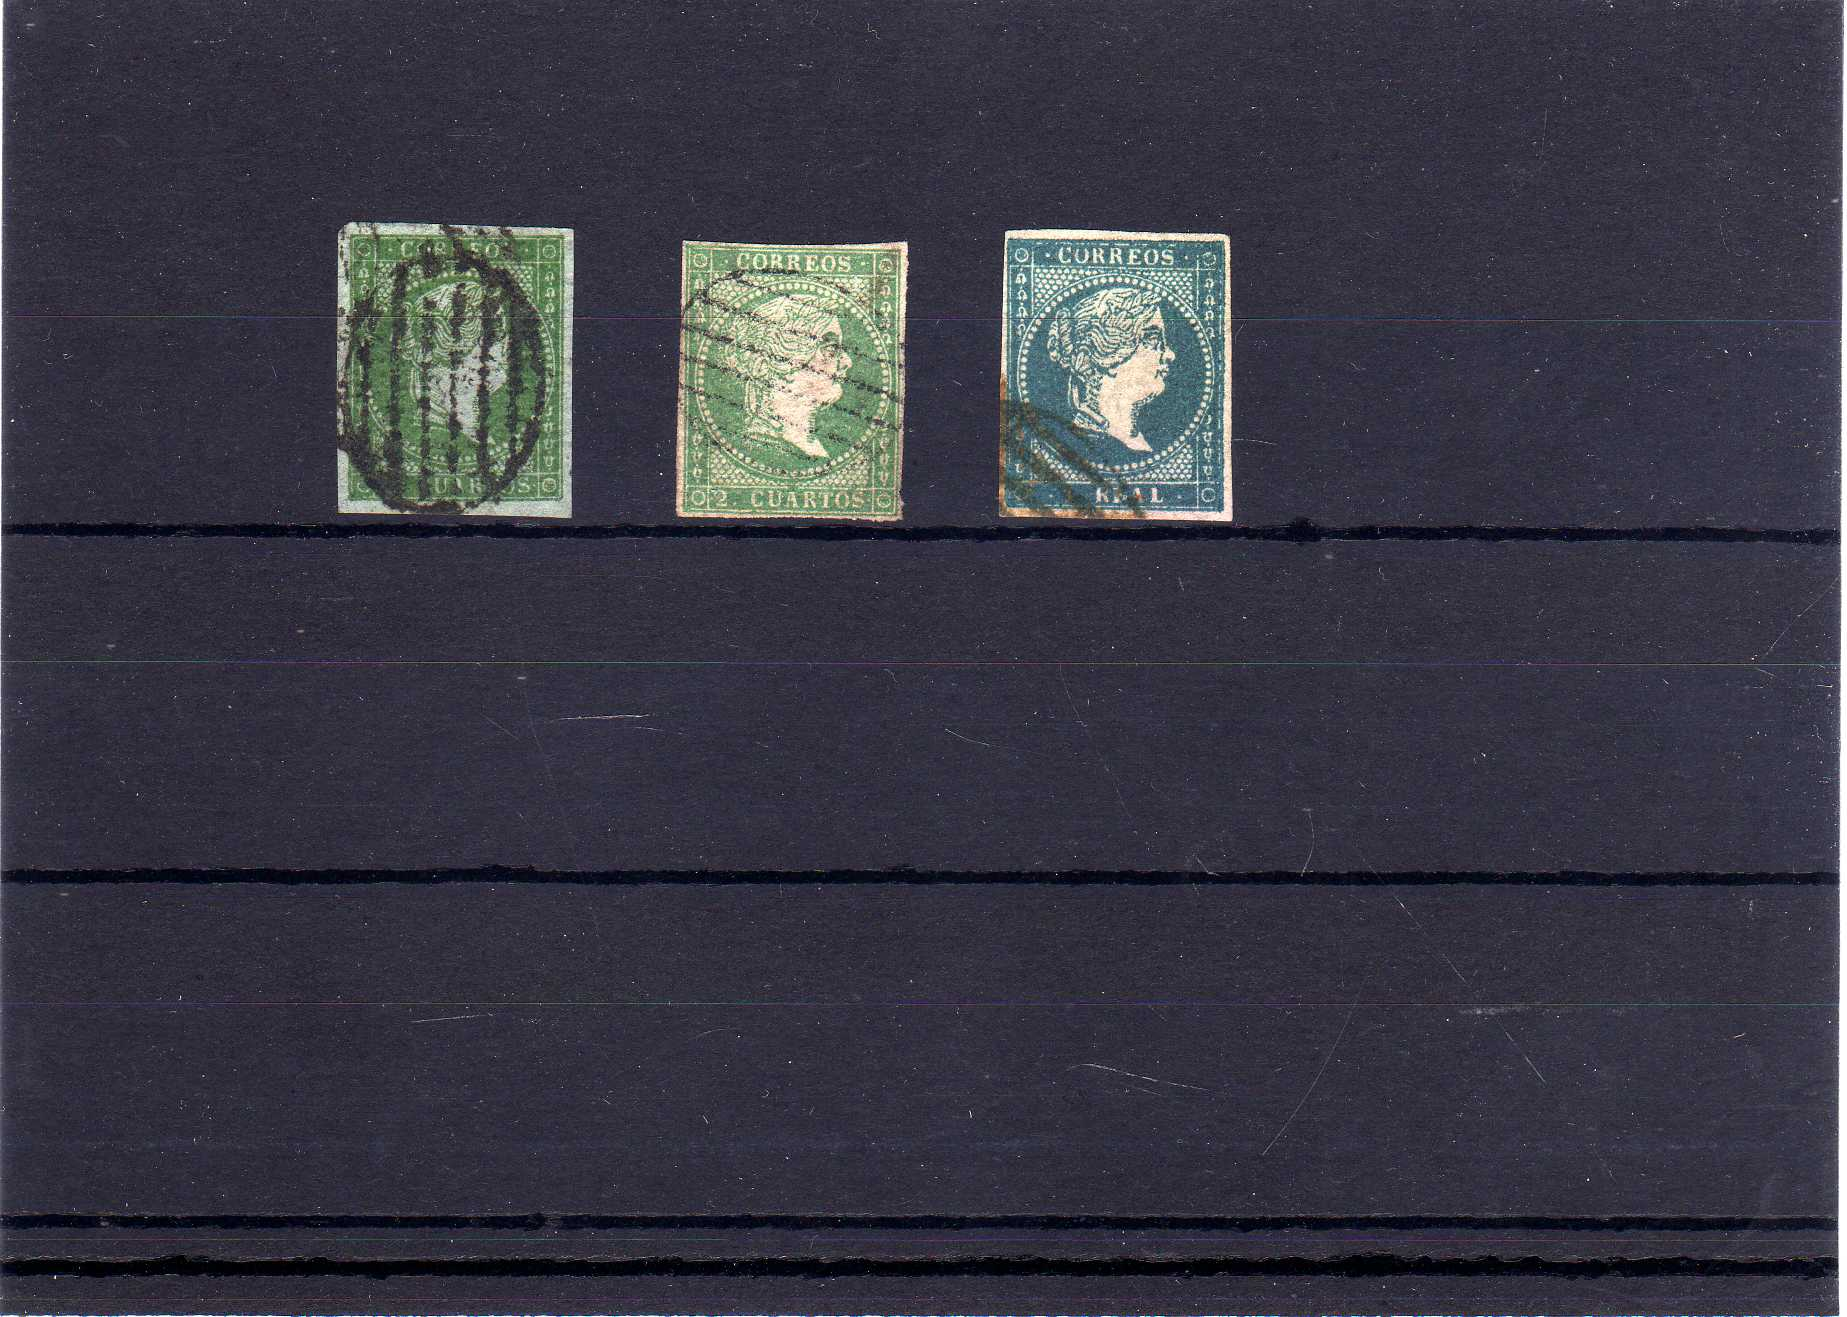 Lot 3258 - germany German Empire (1872-1945) -  Georg Bühler Briefmarken Auktionen 26th mail bid auction